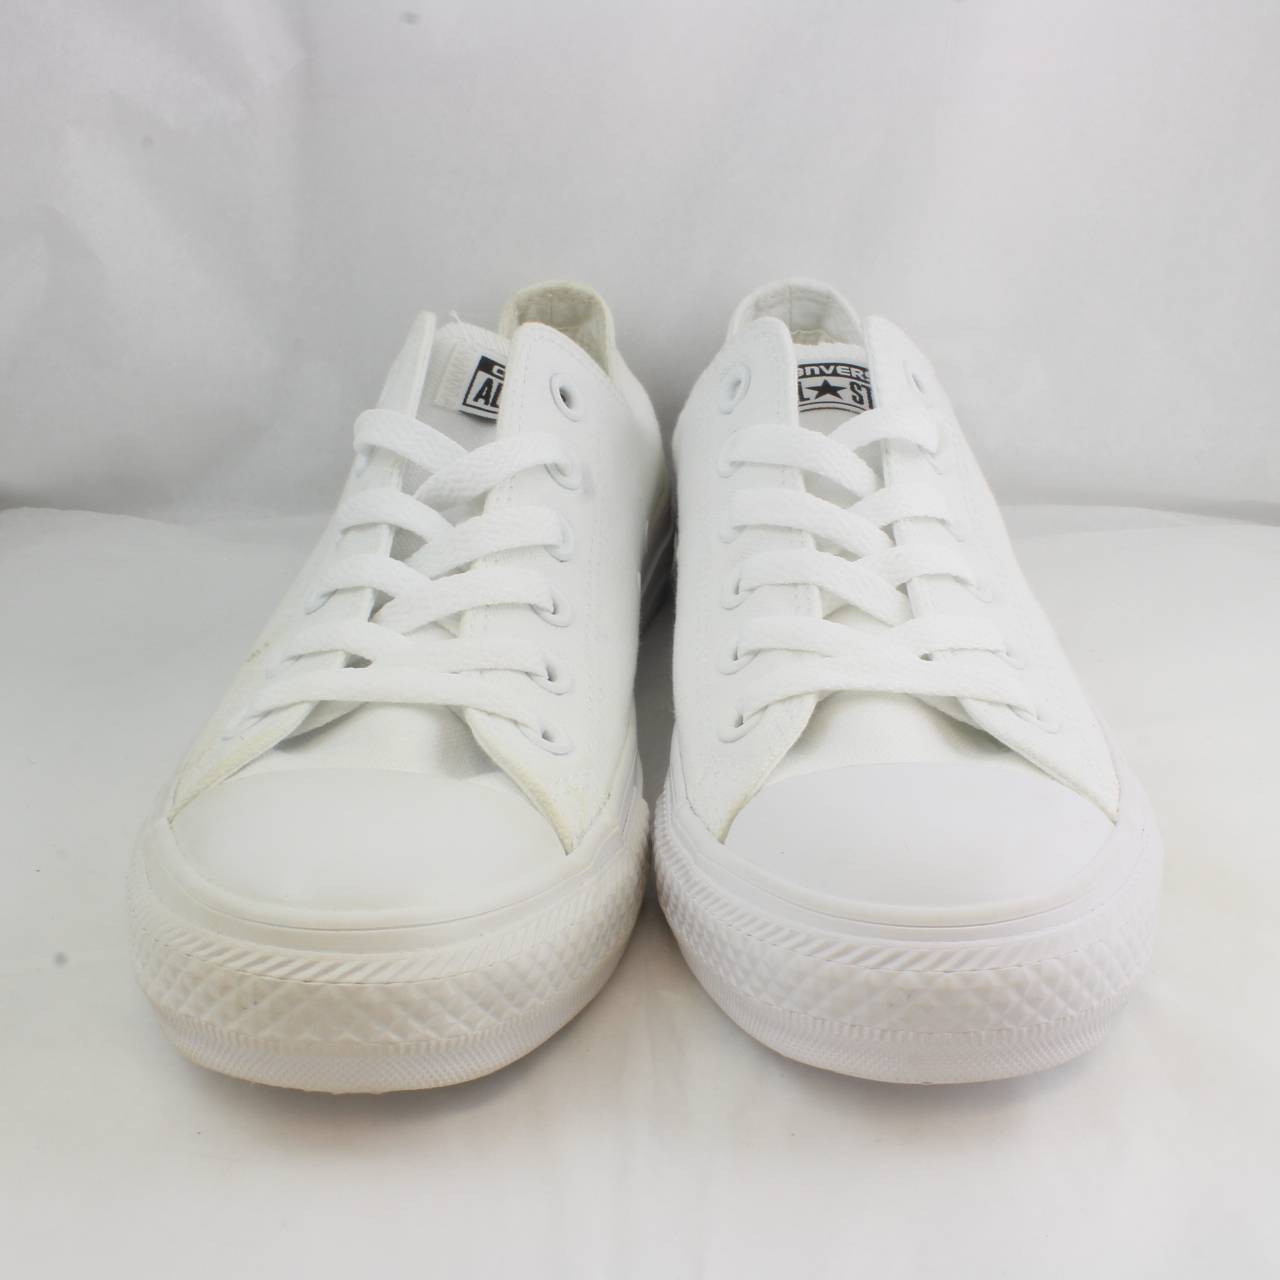 9f1c6fe89c79 Sentinel Womens Converse White Canvas Lace Up Trainers Size UK 6  Ex Display